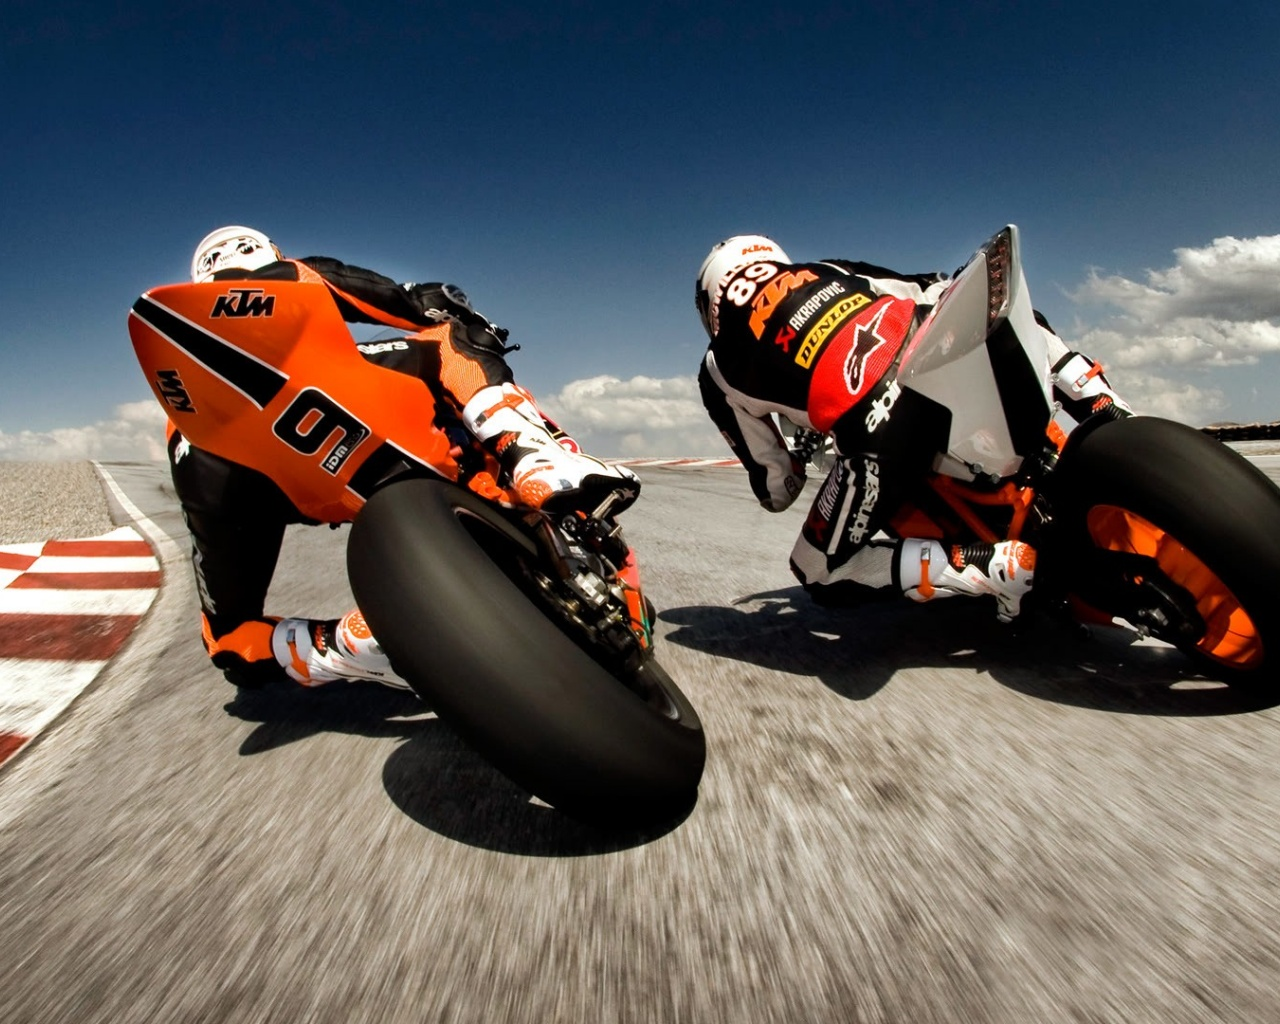 1280x1024 Ktm Bikes Racing Desktop Pc And Mac Wallpaper